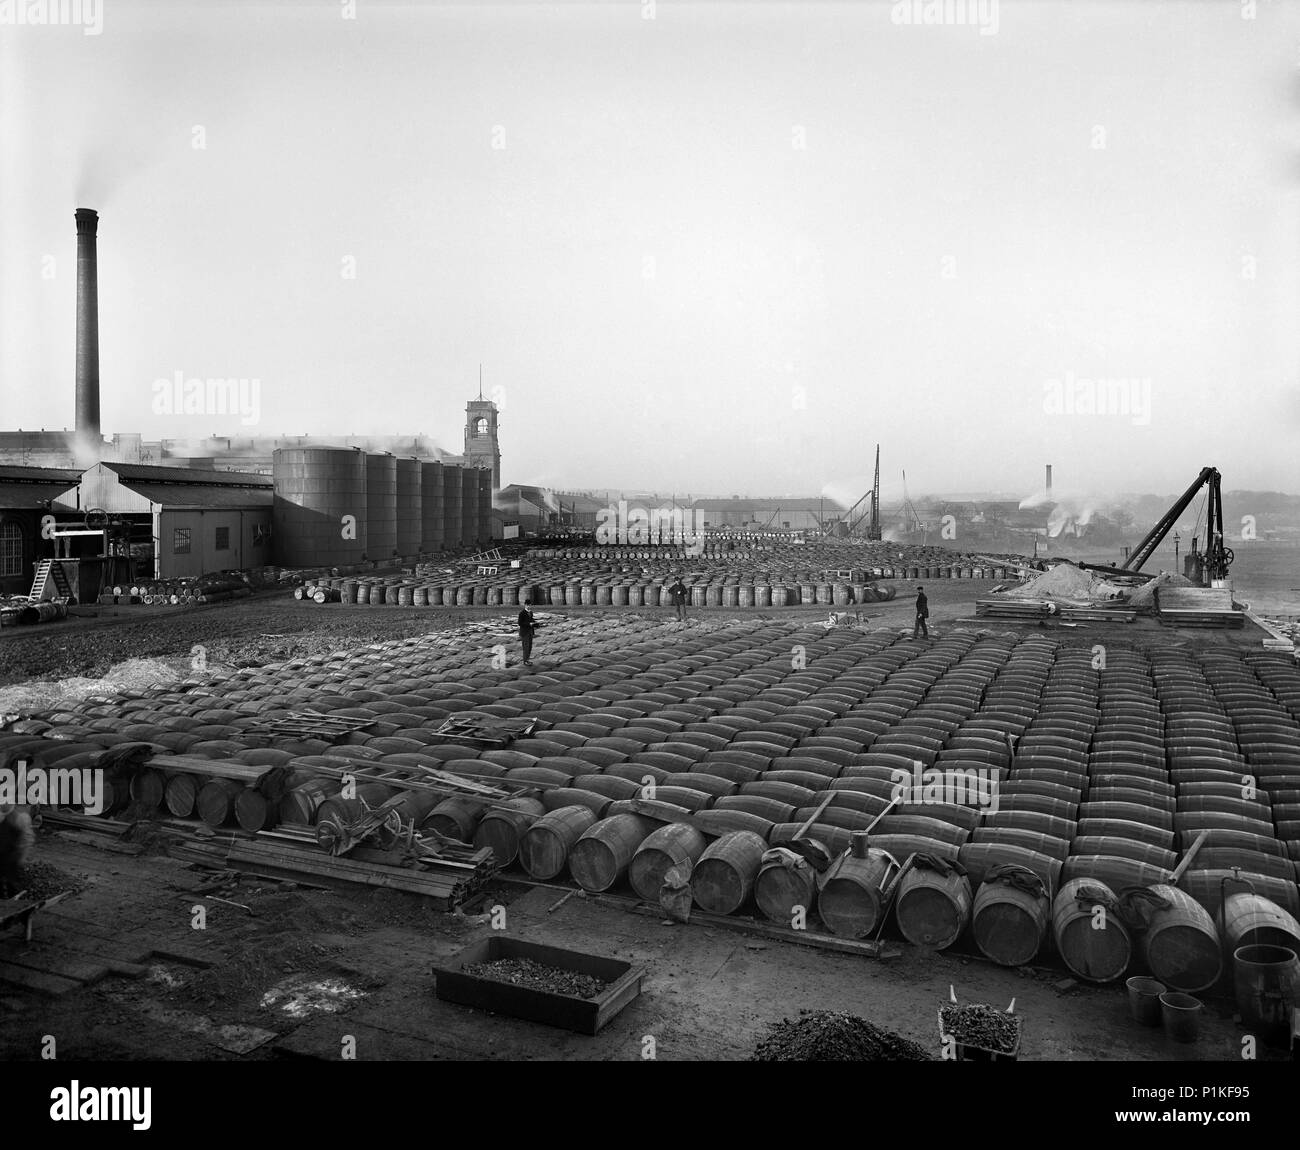 Lever Brothers Sunlight Soap Works, Port Sunlight, Wirral, Merseyside, 1897. Thousands of barrels of tallow and other soap ingredients stacked in rows - Stock Image